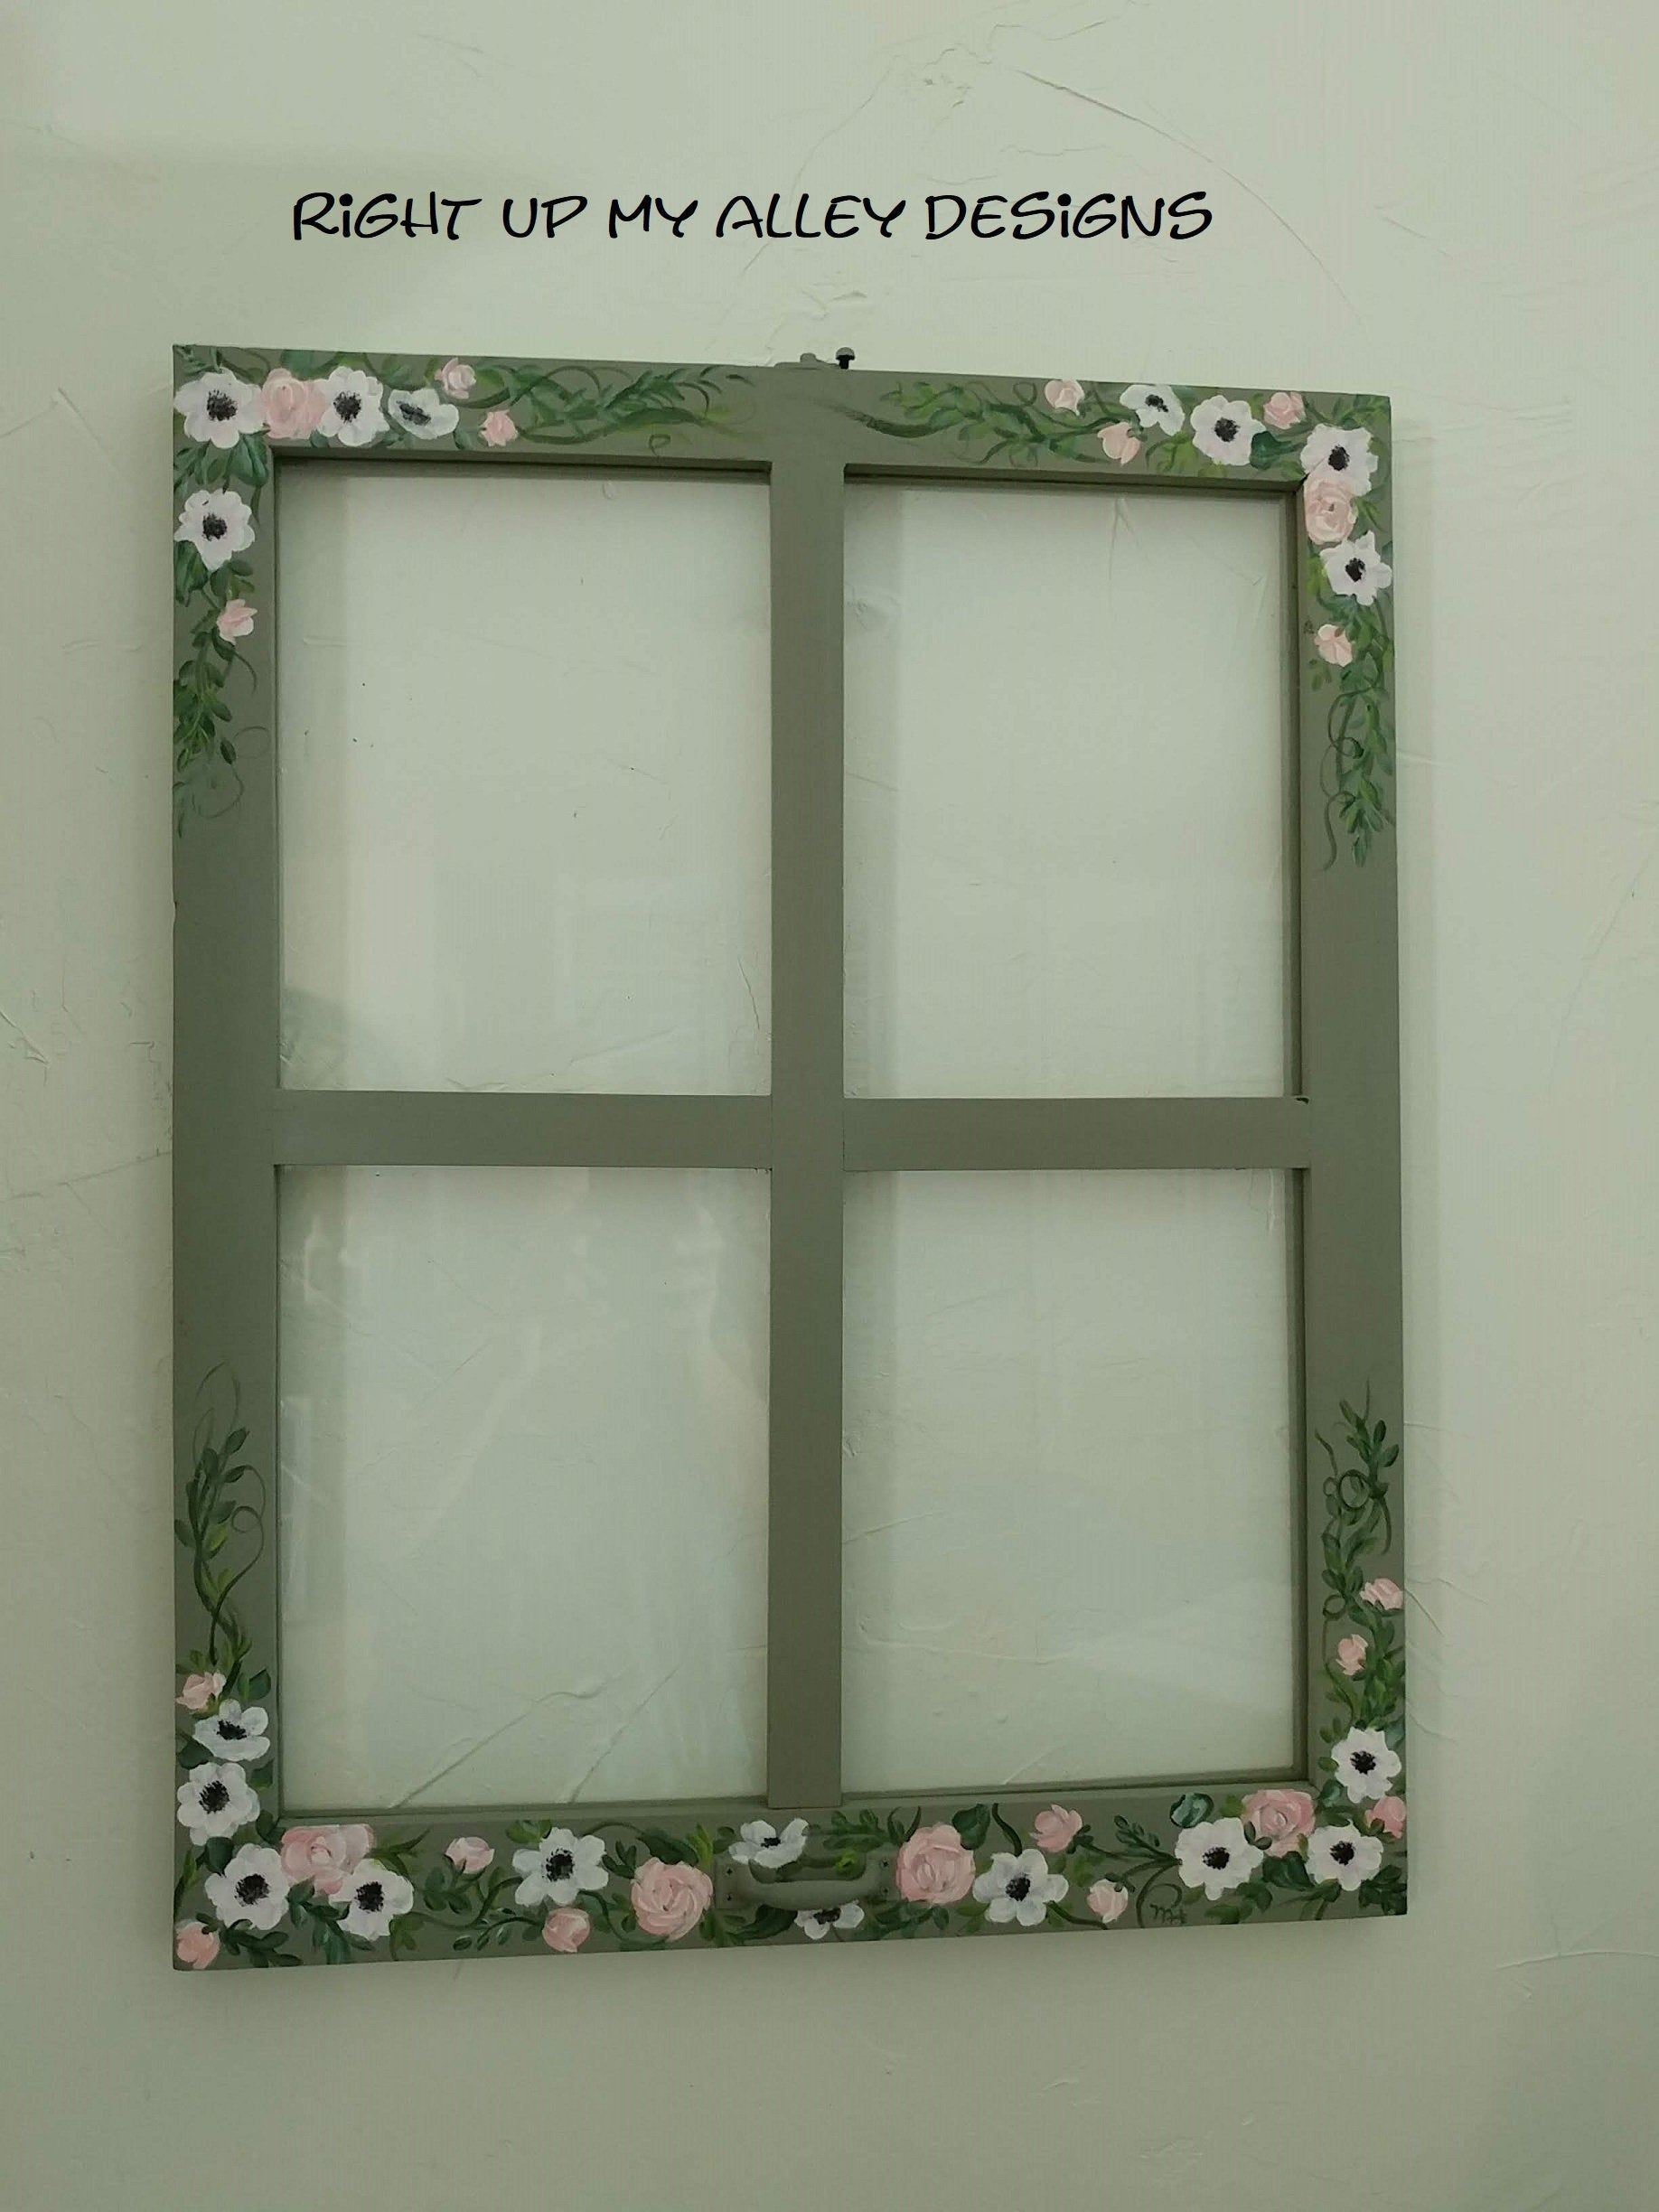 Painted Window Window Pane Art Floral Painted Window Peach And Green Window Decor Window Wall Art Nursery Idea 4 Pane Window Window Painting Window Pane Art Window Decor